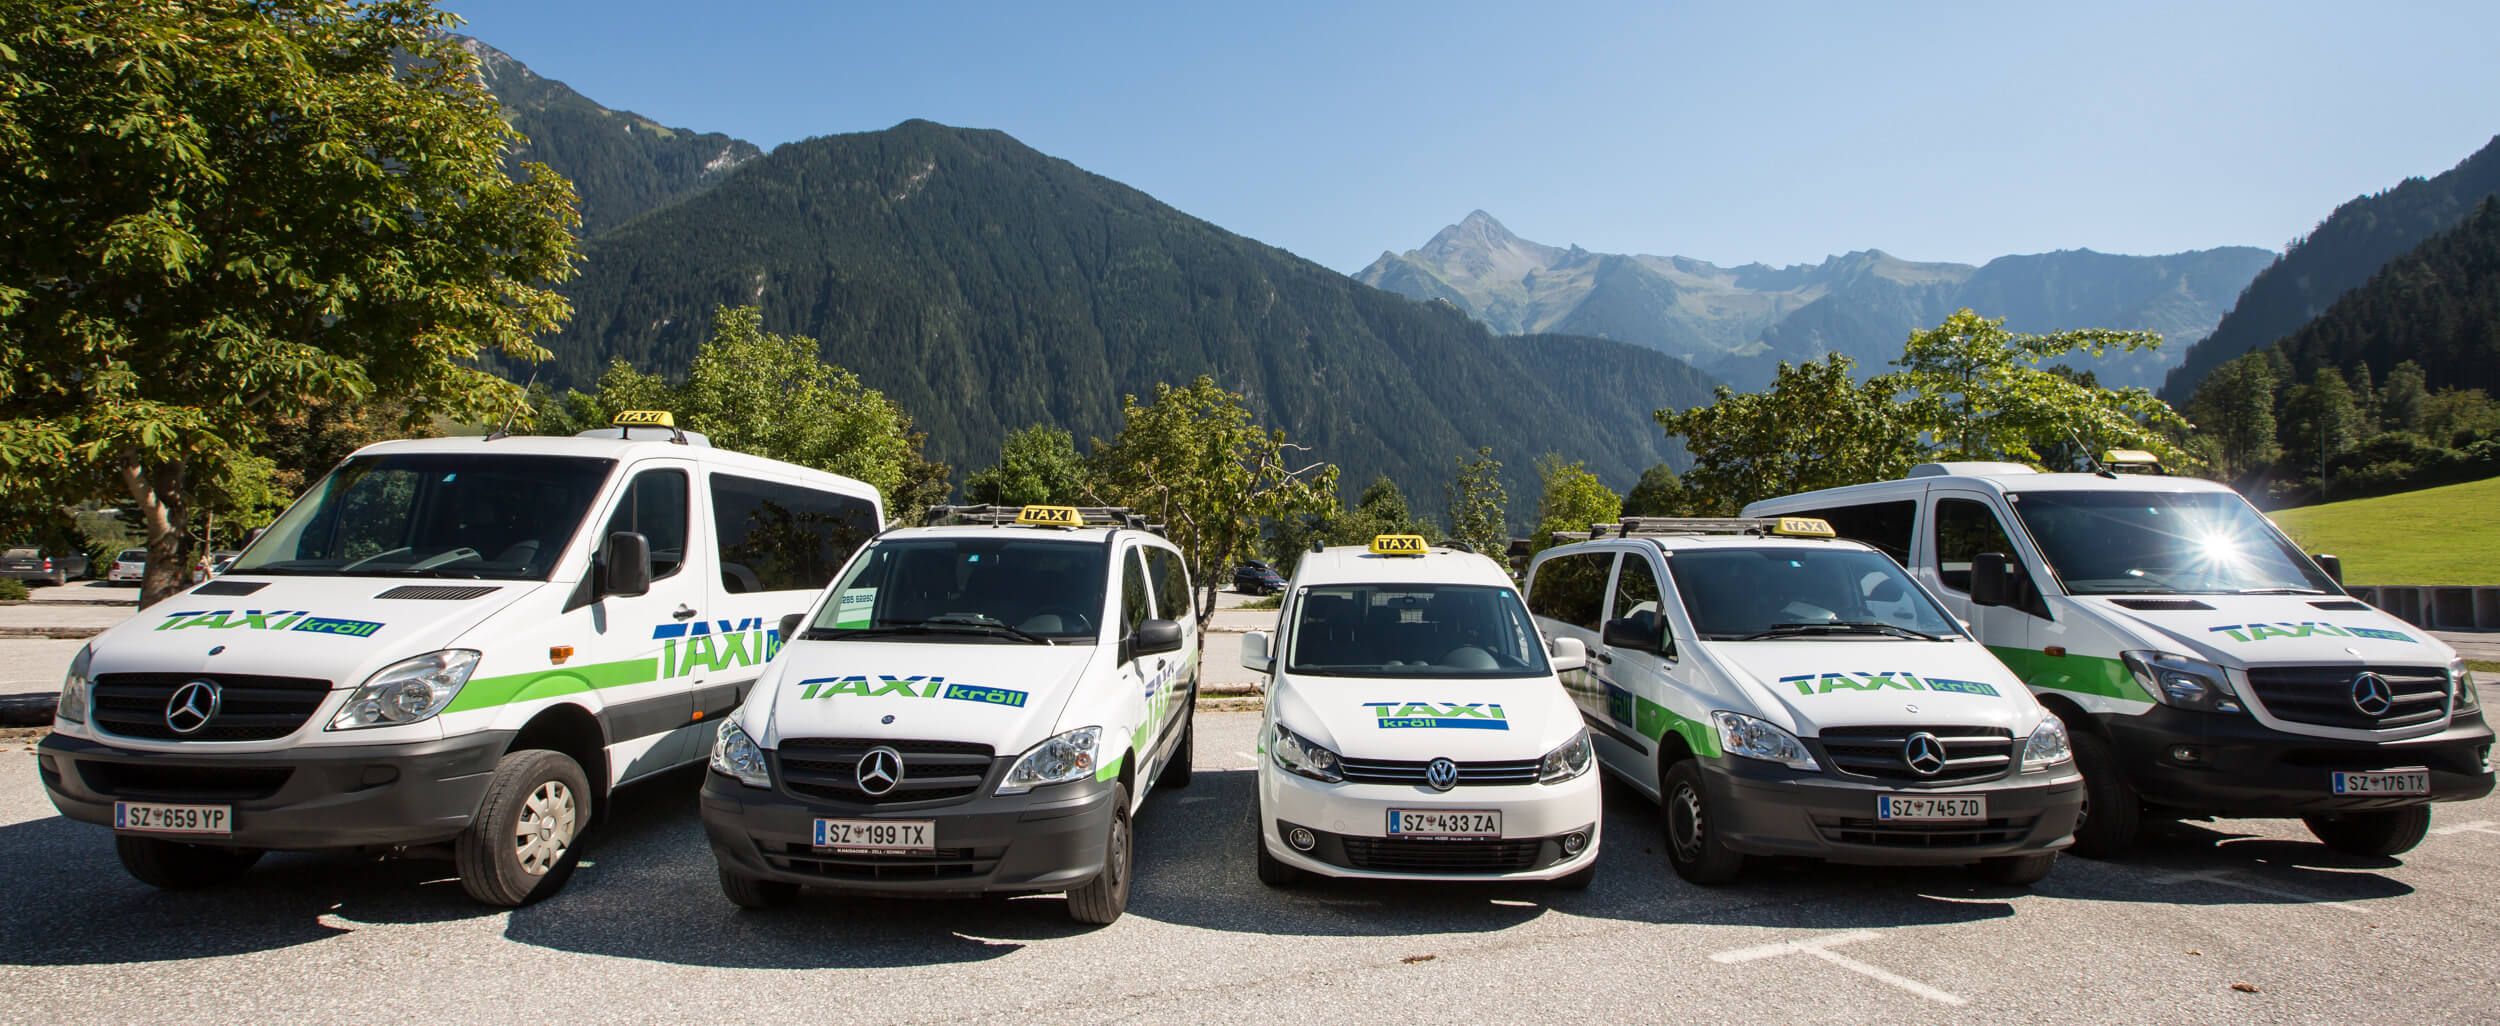 Ski shuttle in Zillertal for your skiing holiday - Taxi